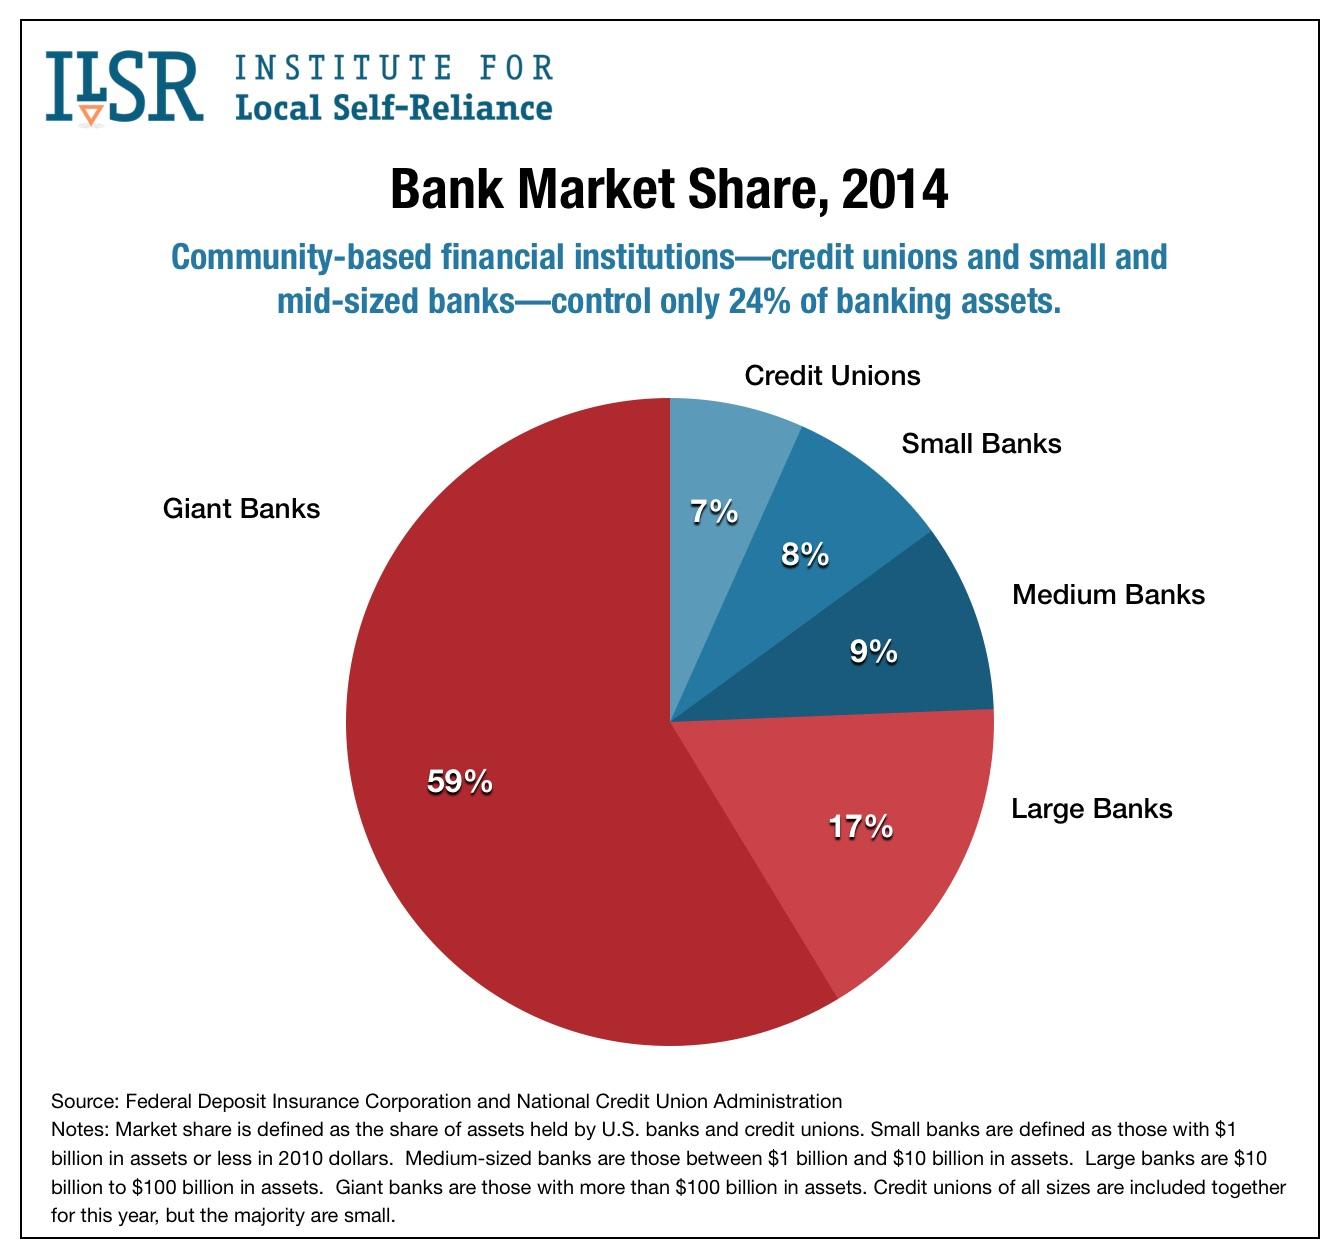 Small Business Lending By Size Of Institution 2014